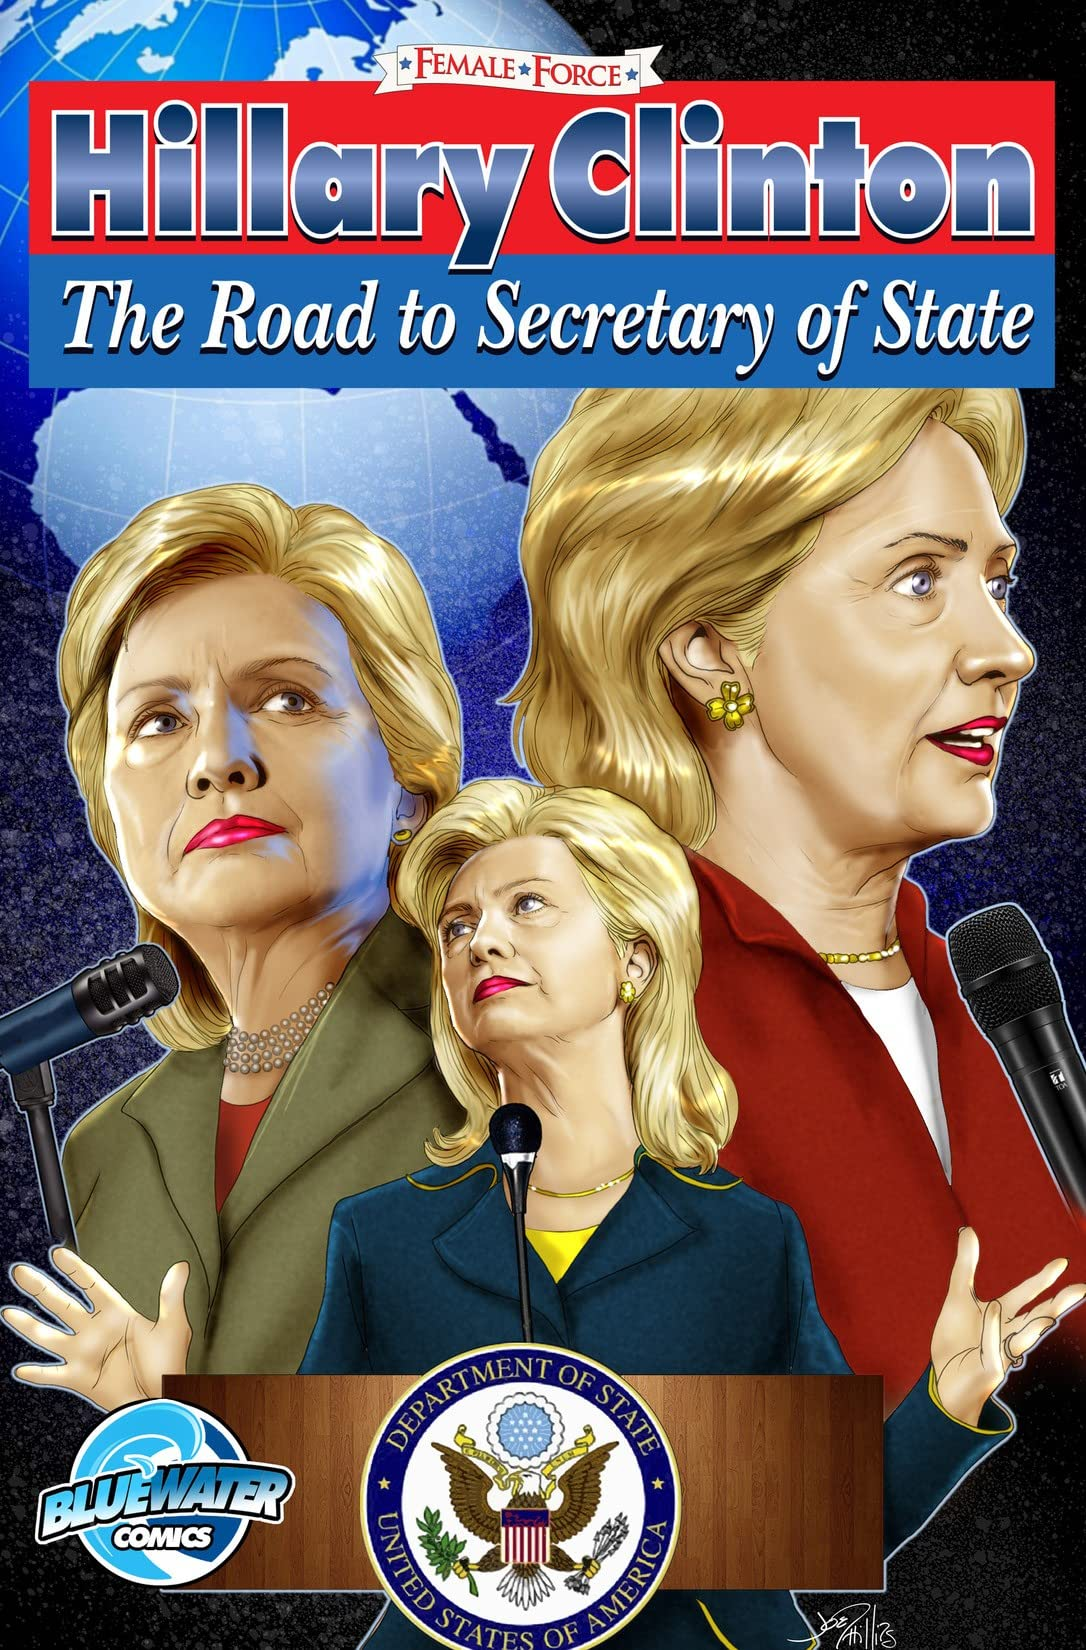 Female Force: Hillary Clinton: Secretary of State